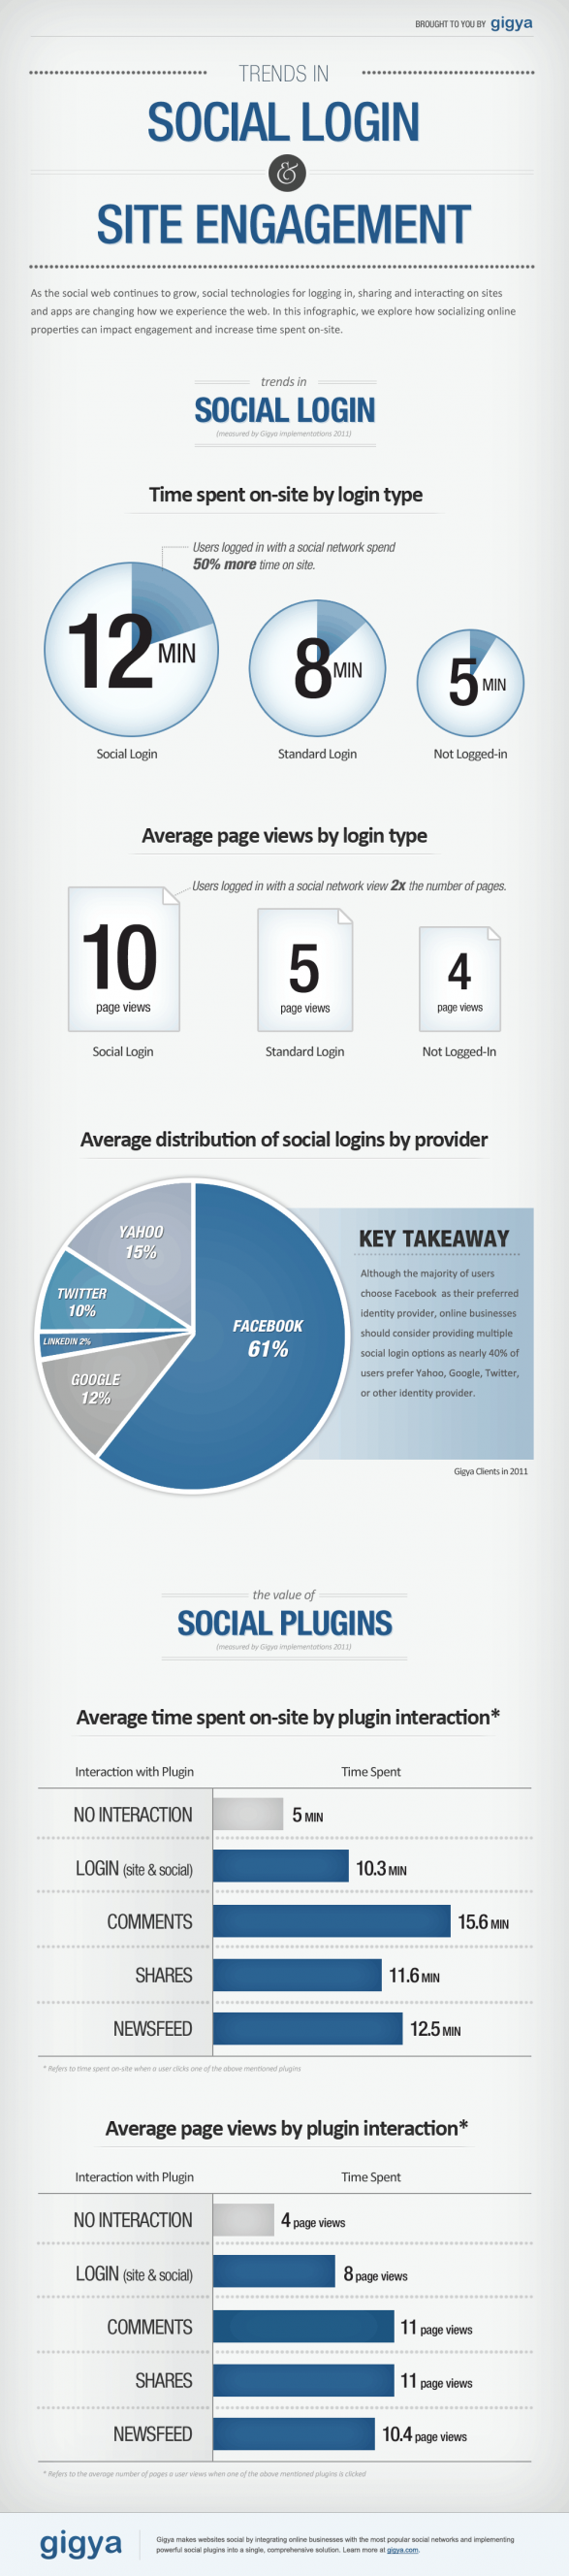 Trends in Social Login and Site Engagement